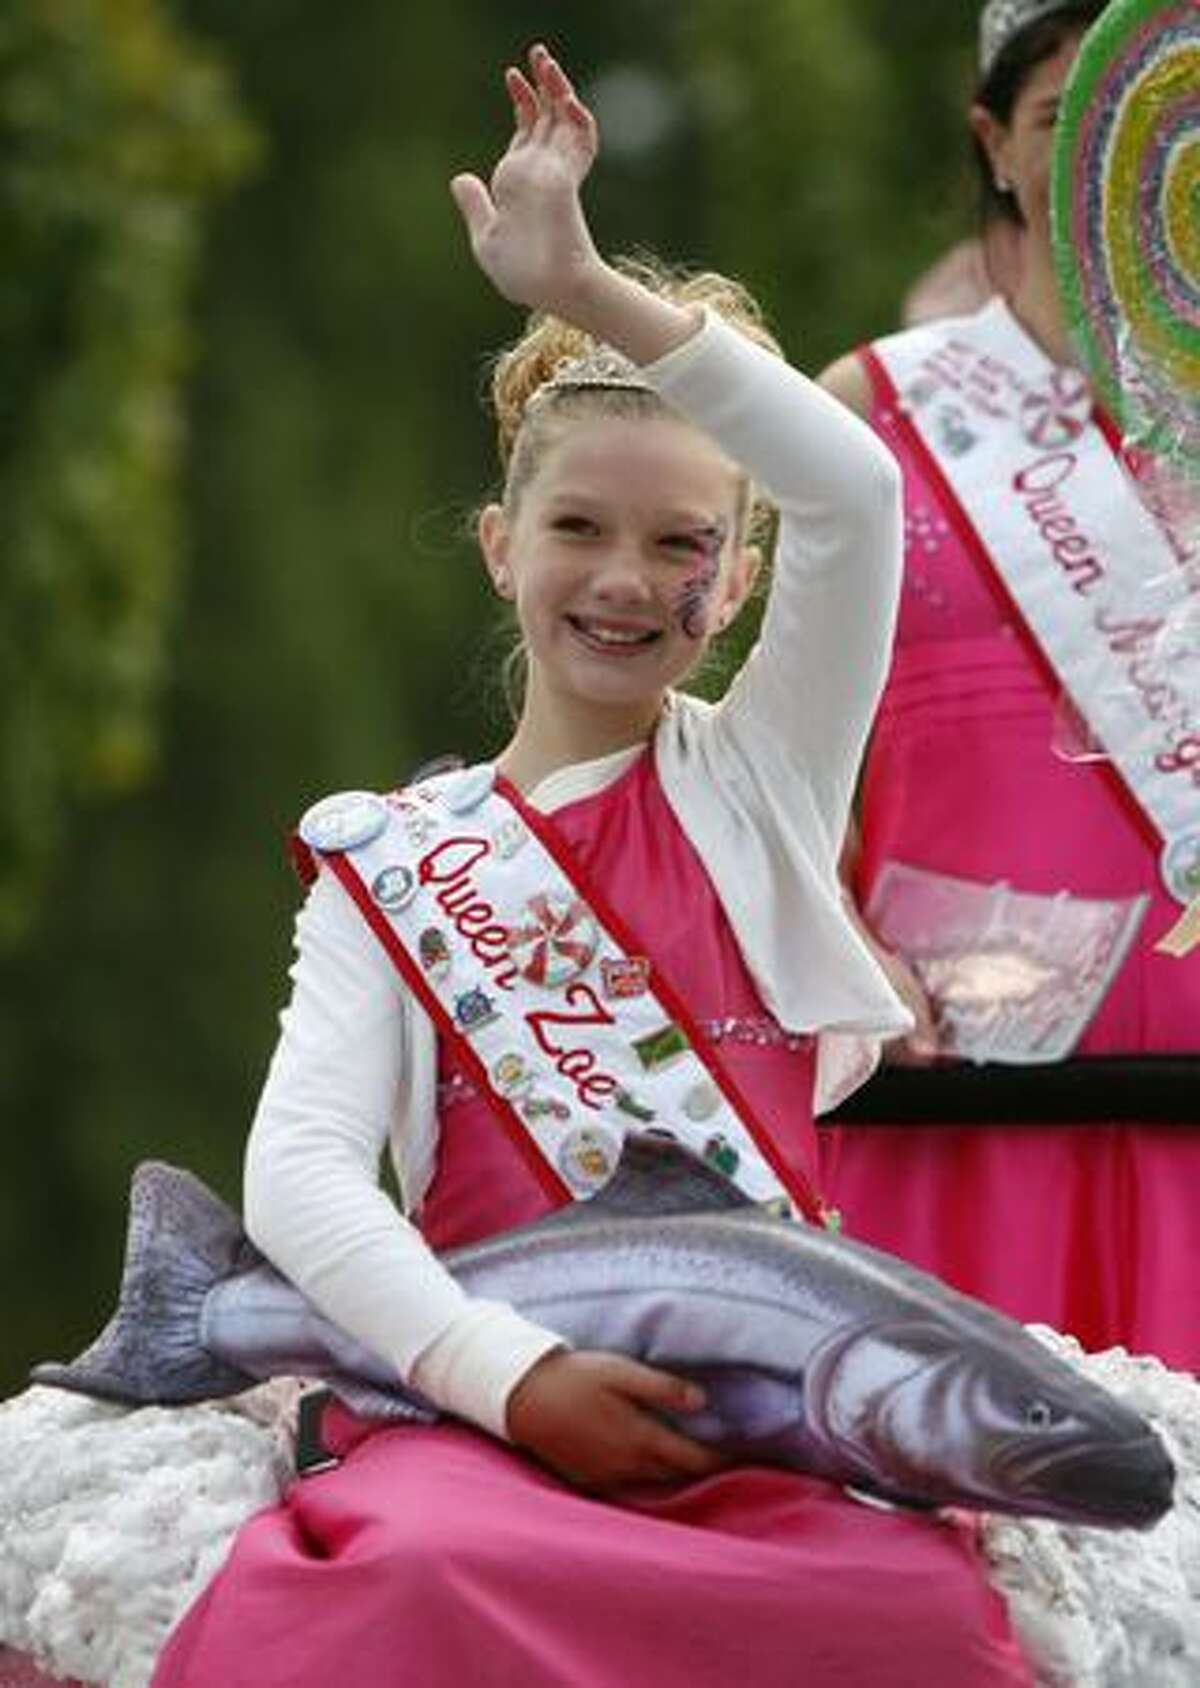 A member of the West Seattle Hi-Yu royalty waves to the crowd during the Issaquah Salmon Days Festival parade.